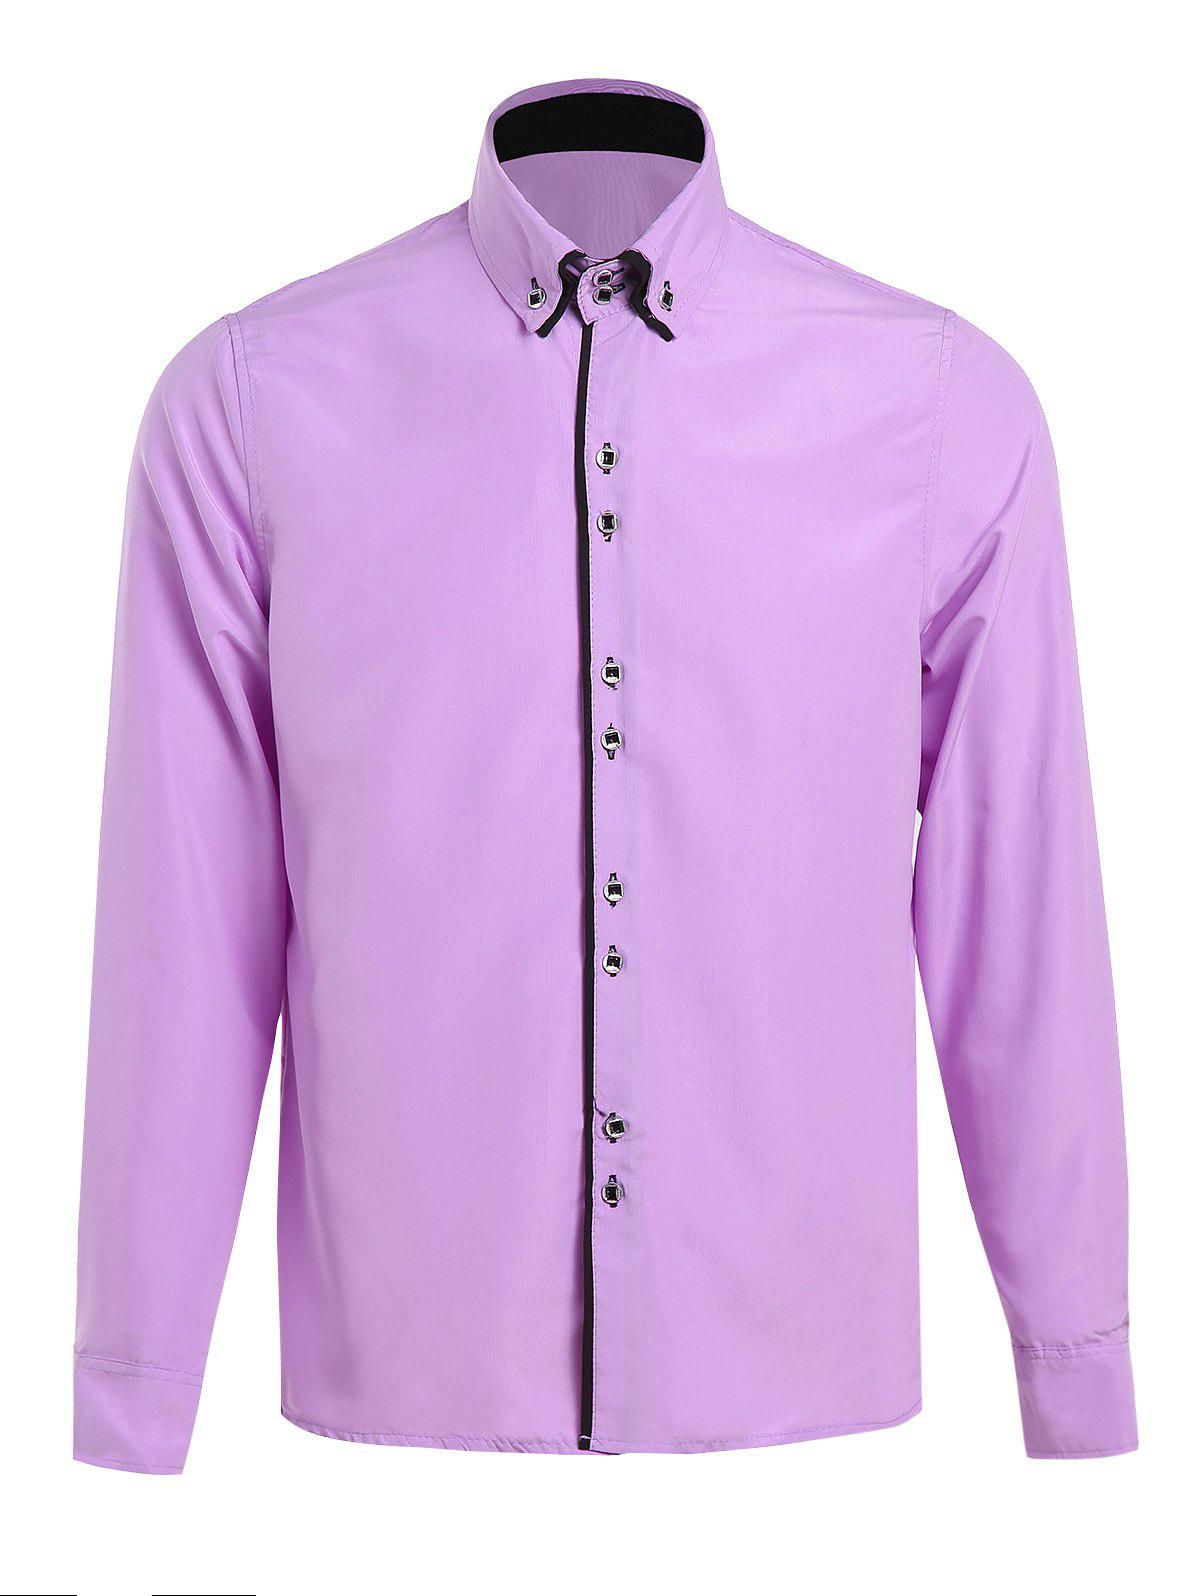 Solid Color Spliced Design Turn-Down Collar Long Sleeve Men's Shirt - PURPLE M